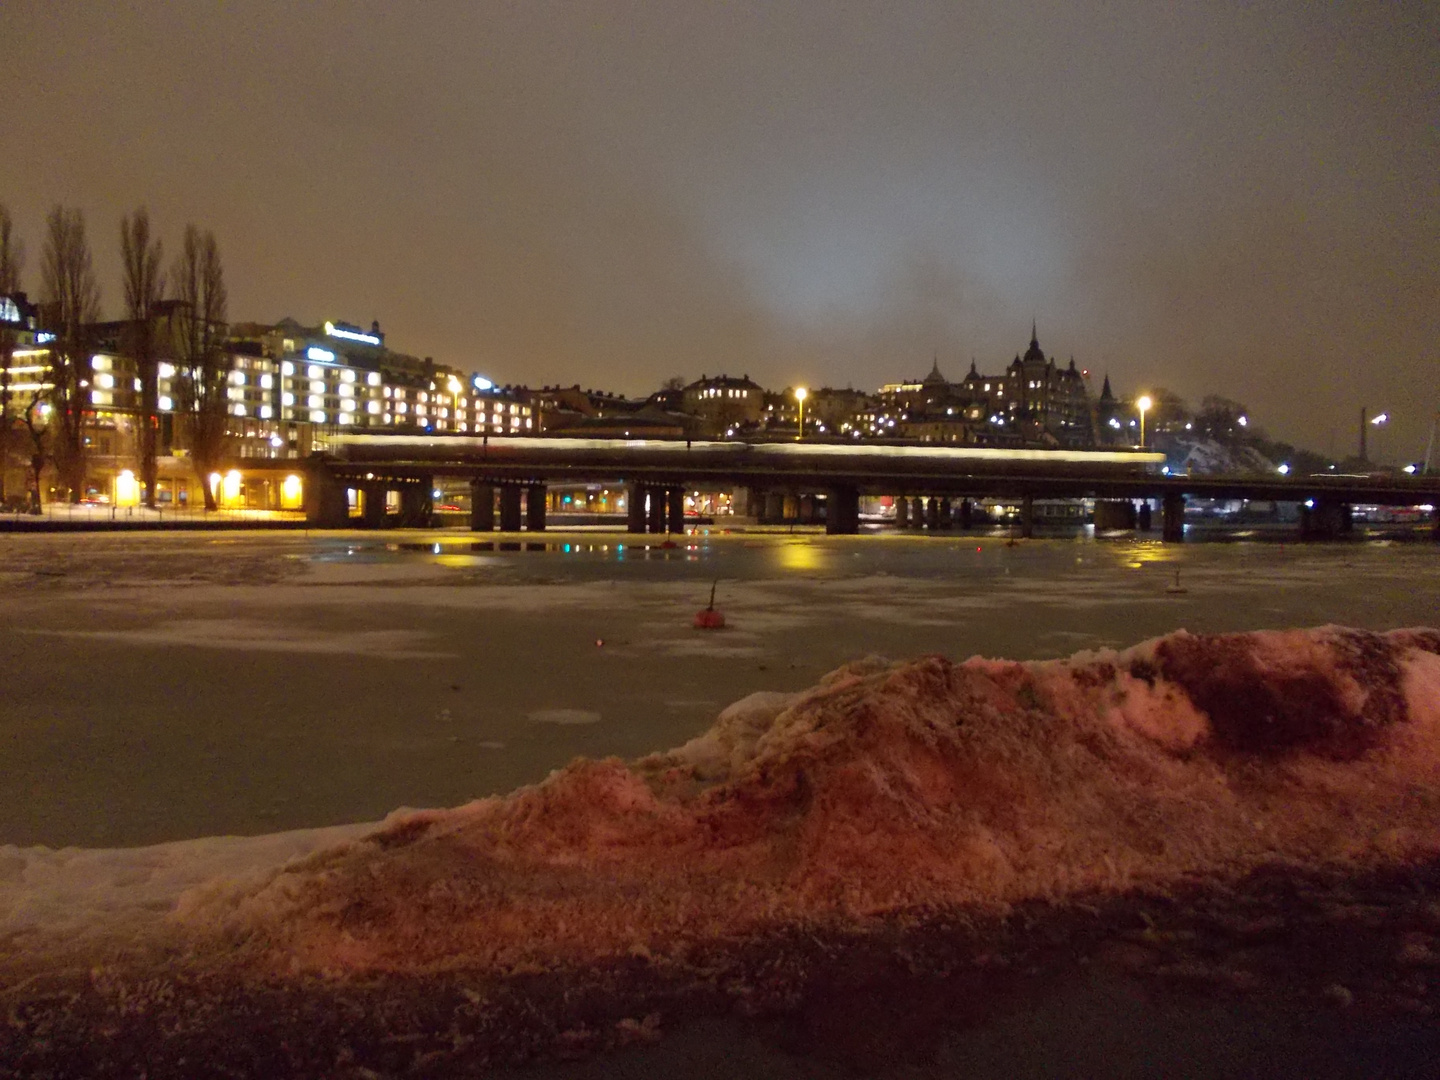 One night in Stockholm